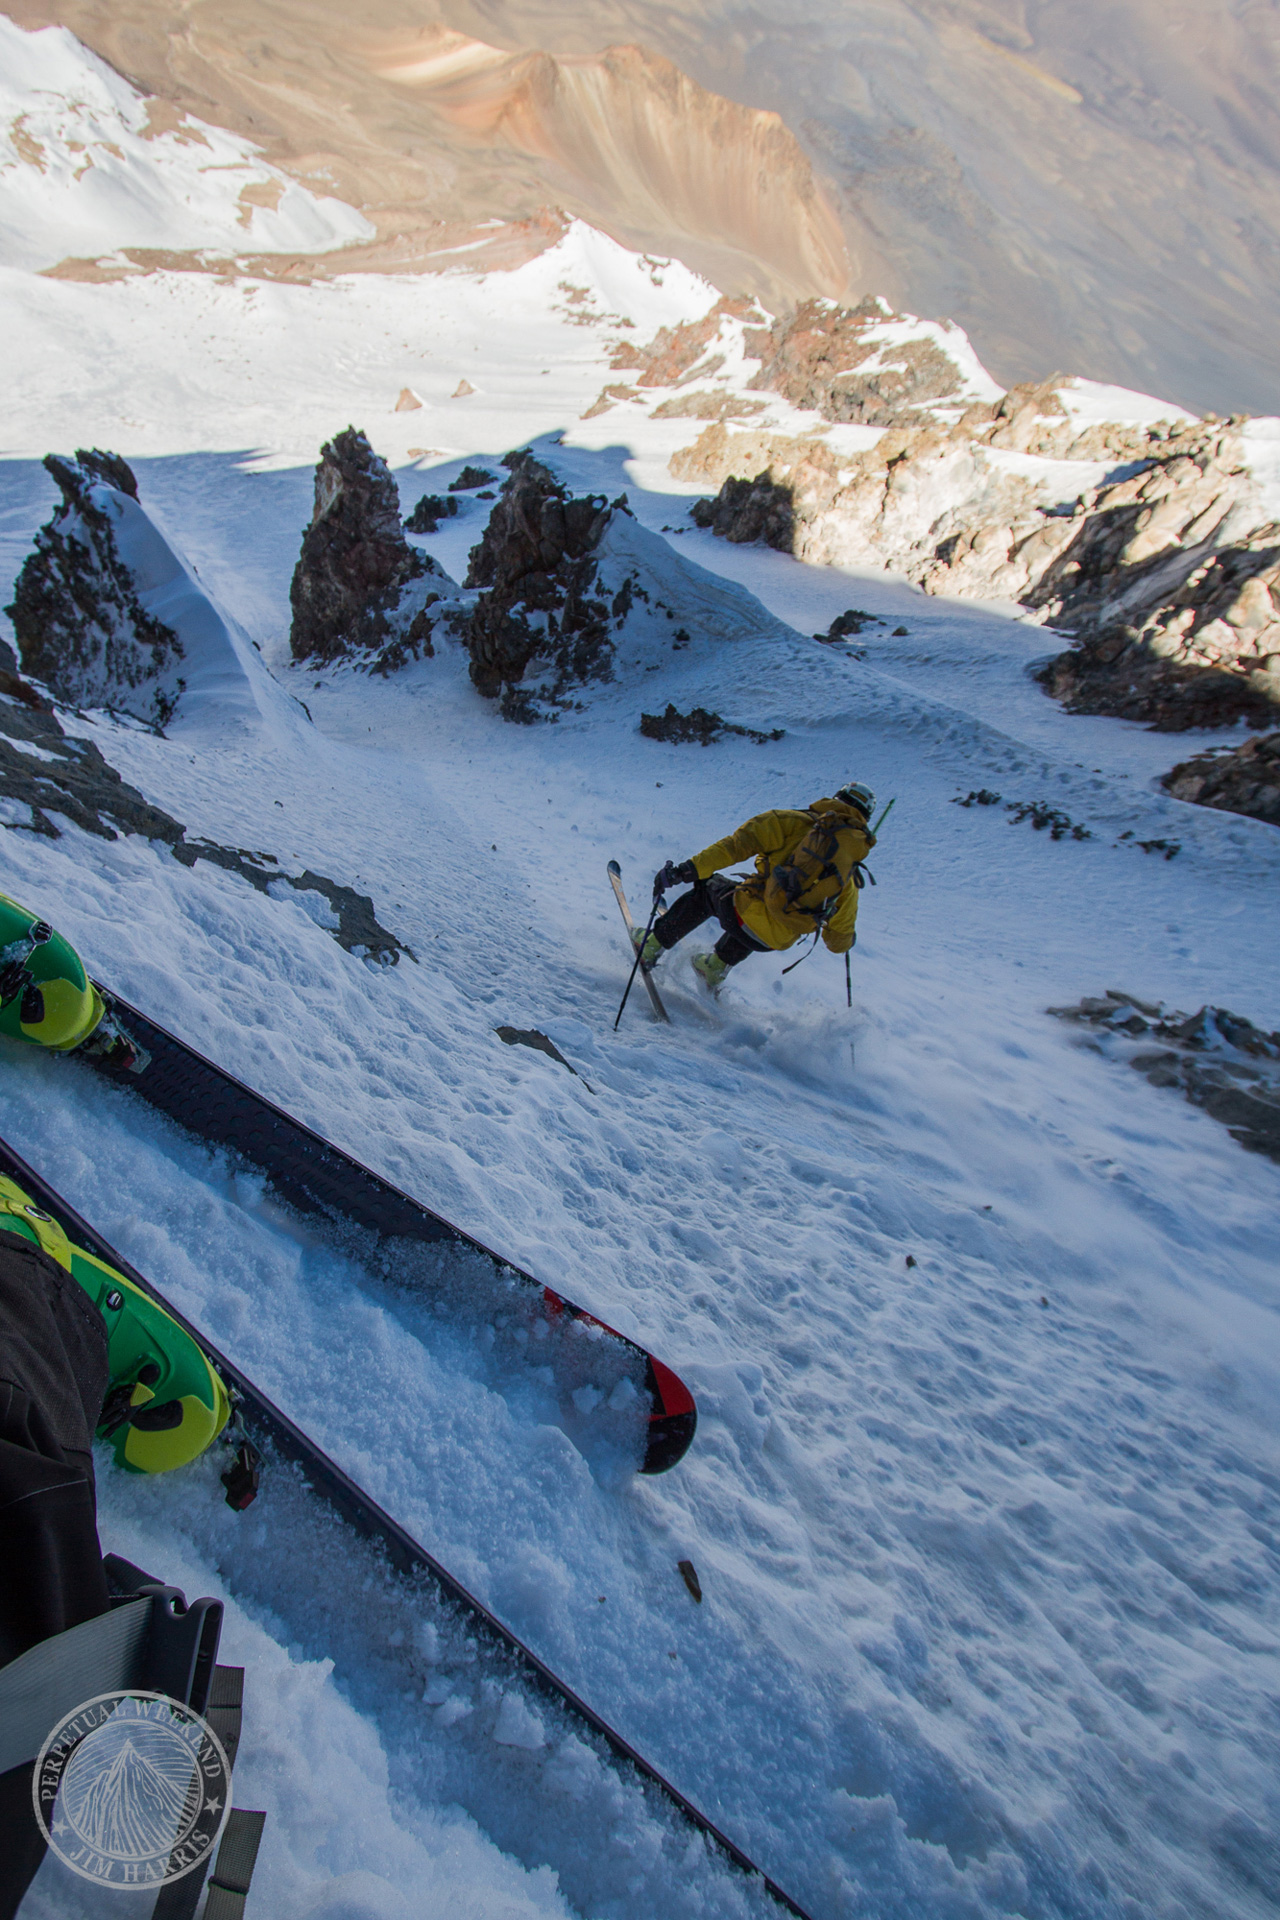 Alan Schwer hops down a steep ski line at 19,000 ft, Volcan Pomarape, Bolivia. Photo By Jim Harris